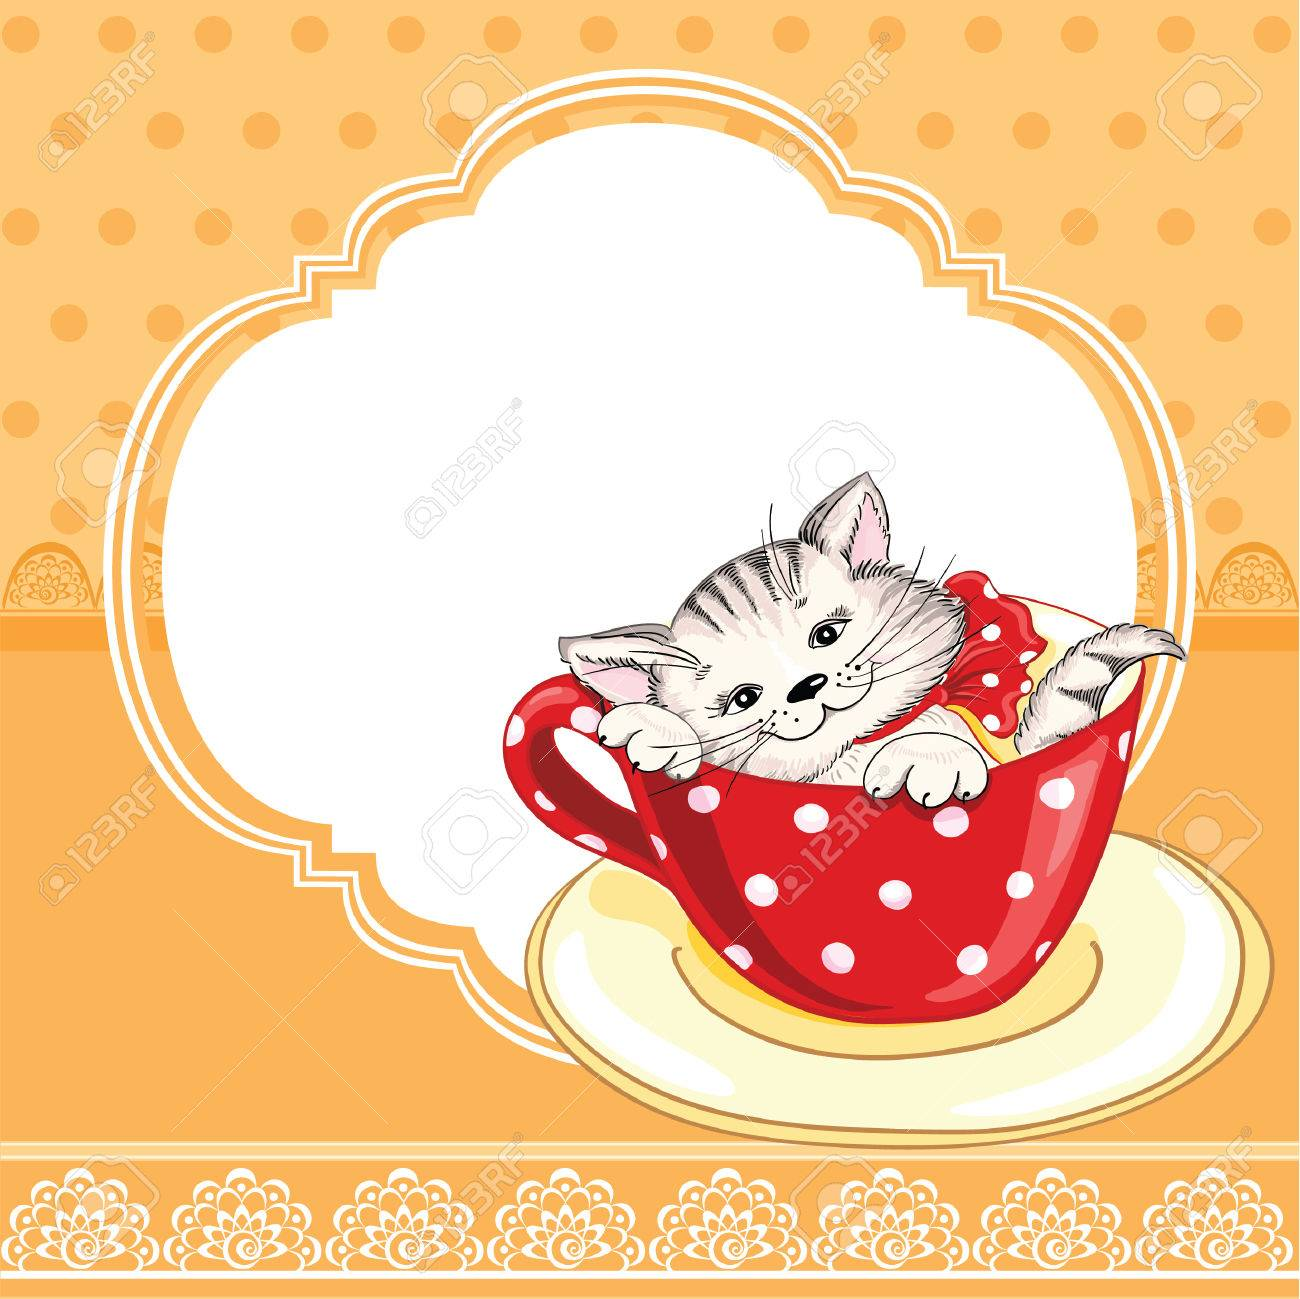 Vintage Birthday Card With Funny Cat On A Lace Background And